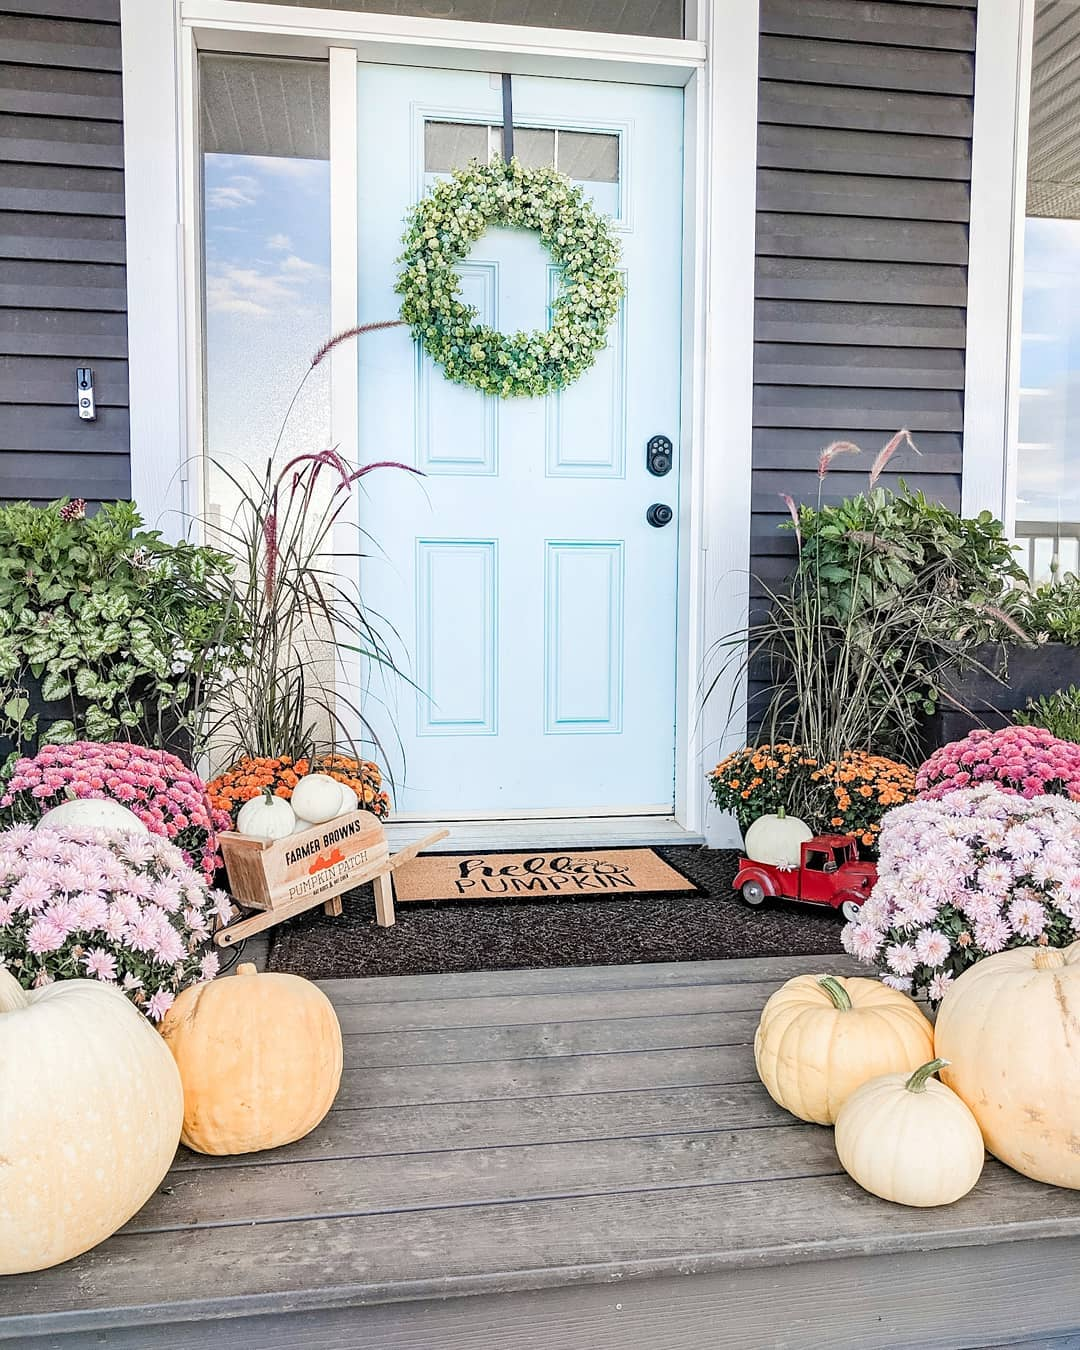 1569404388 585 front porch decor ideas to welcome fall with - Front Porch Decor Ideas To Welcome Fall With